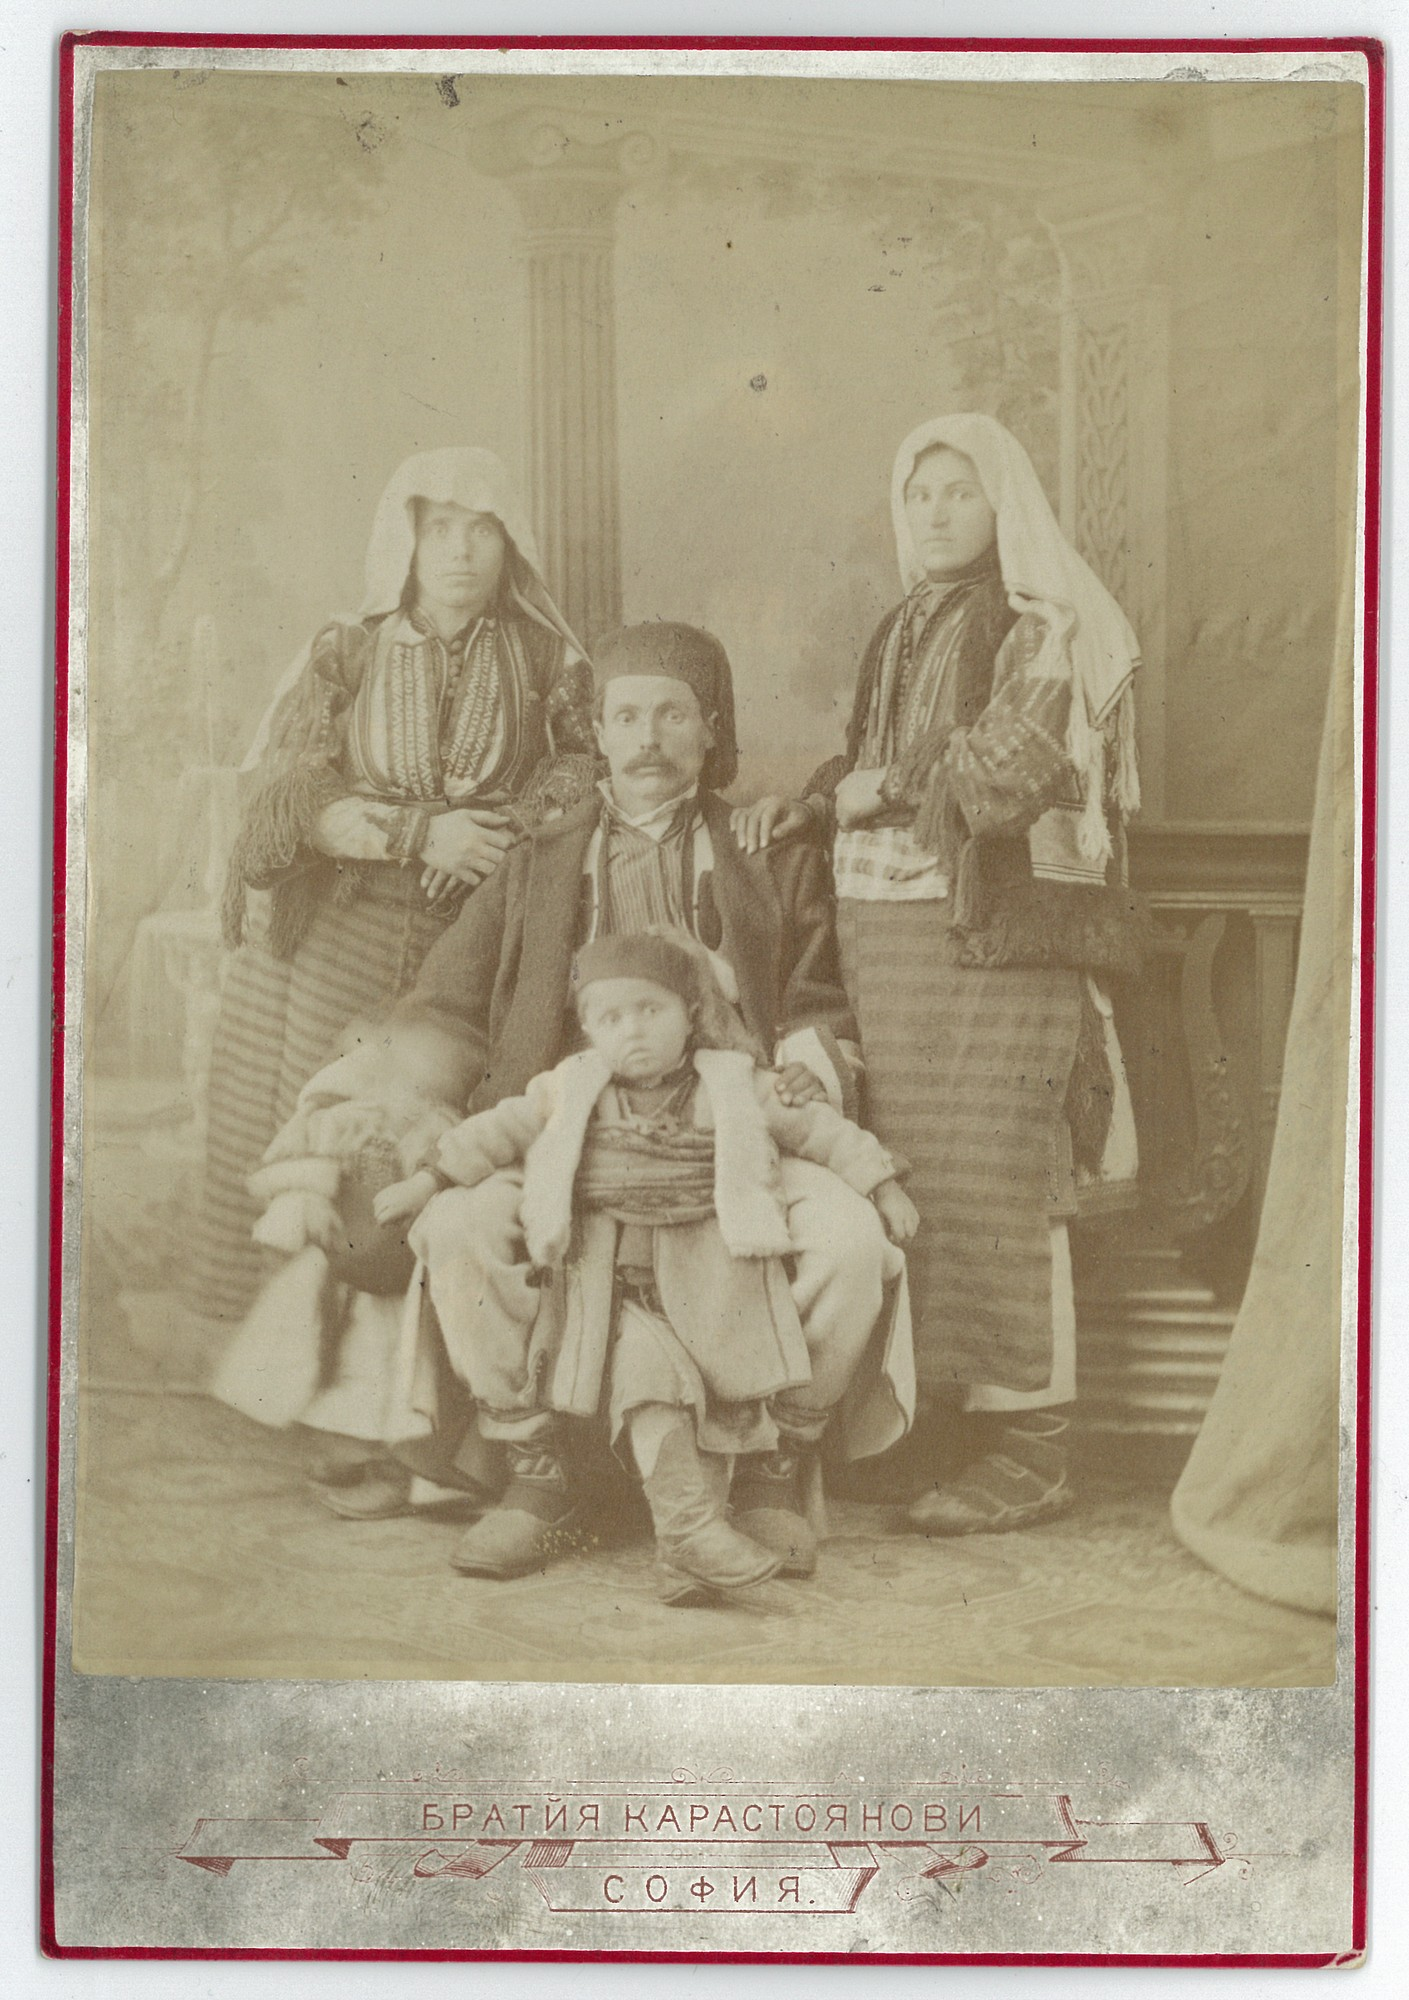 Studio portrait of a group of people in folk attire, © Scientific Archive of the Bulgarian Academy of Sciences